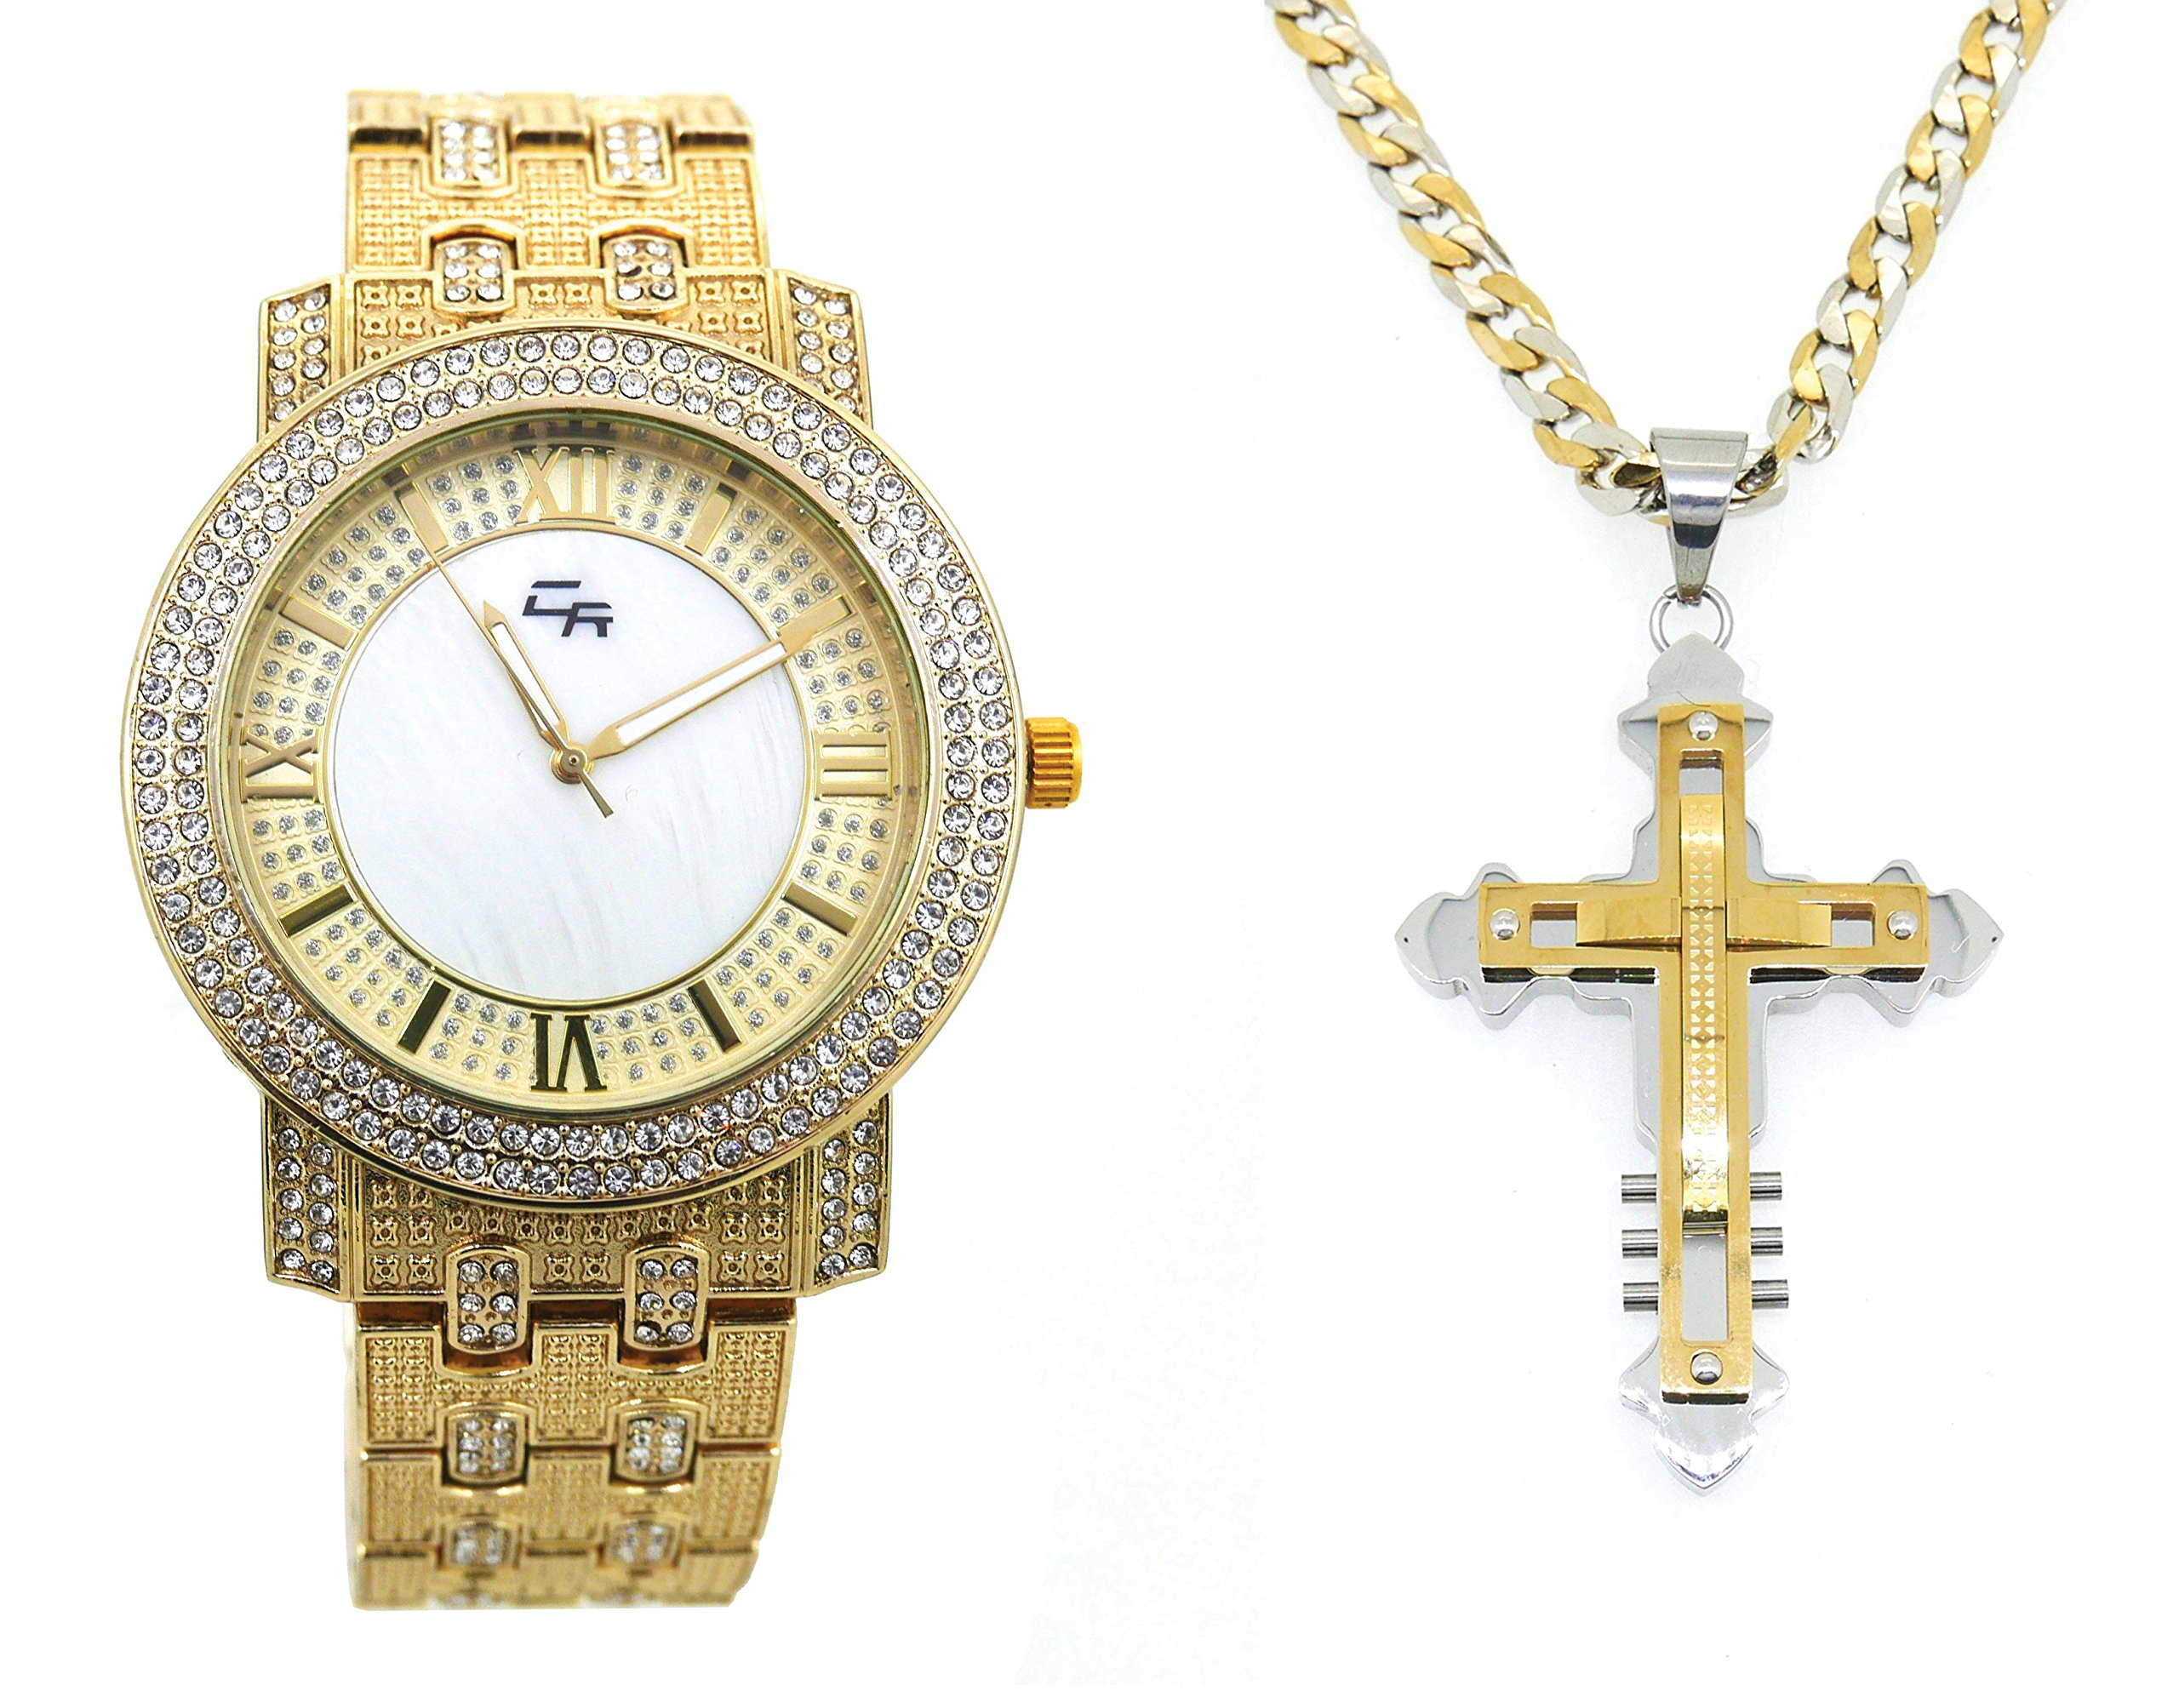 Iced Out Thick Rich Hip Hop Bling Mens Gold Watch with Stainless Steel Jesus Pendent Necklace - 031GLD-GCR20